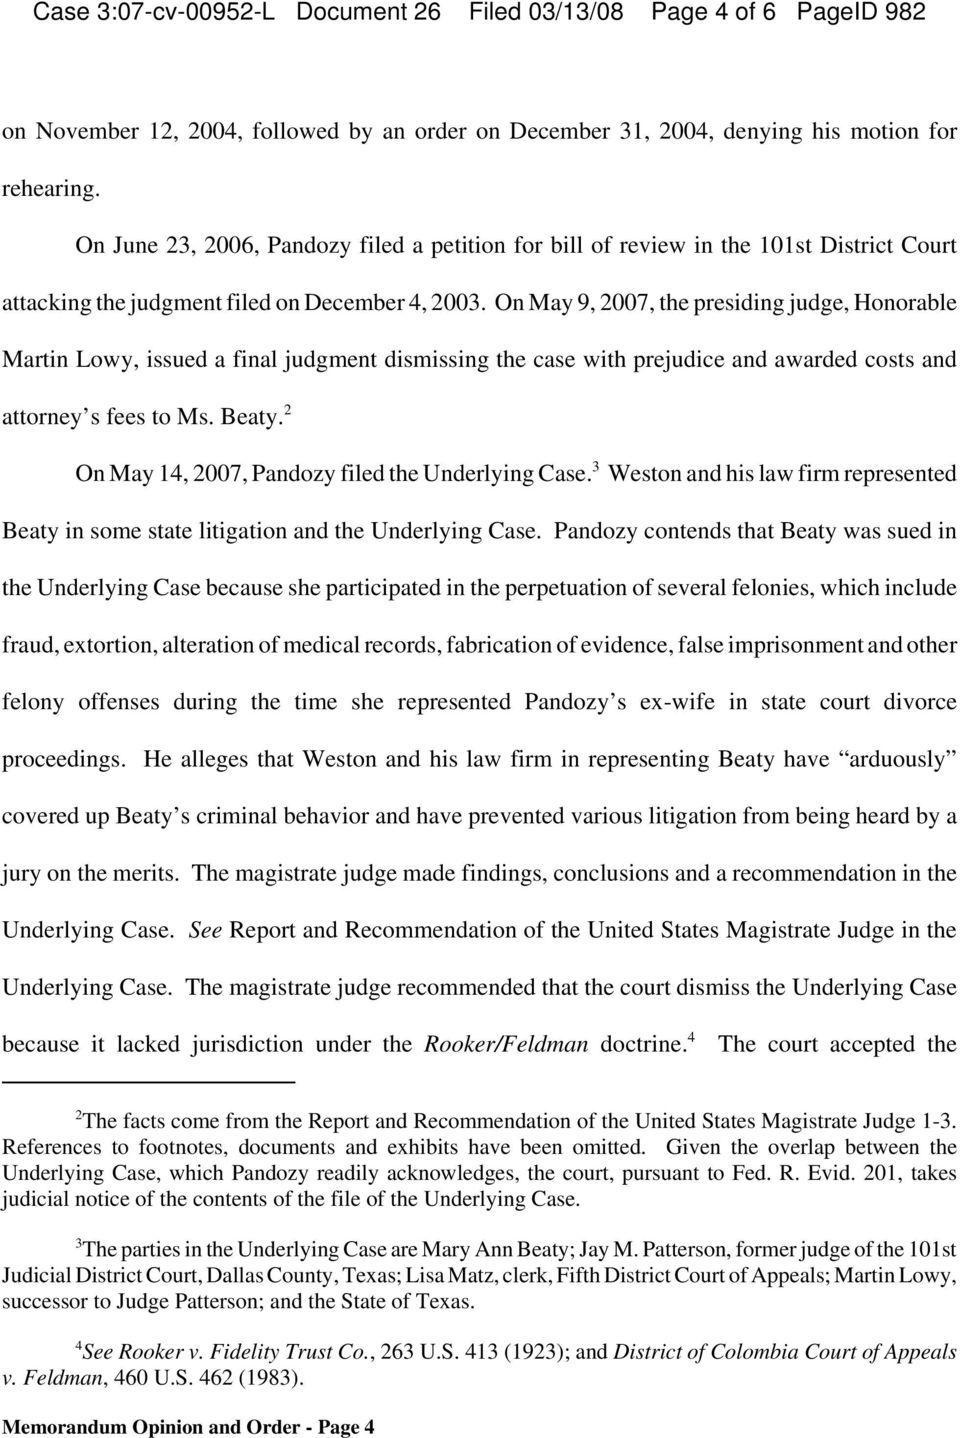 On May 9, 2007, the presiding judge, Honorable Martin Lowy, issued a final judgment dismissing the case with prejudice and awarded costs and attorney s fees to Ms. Beaty.